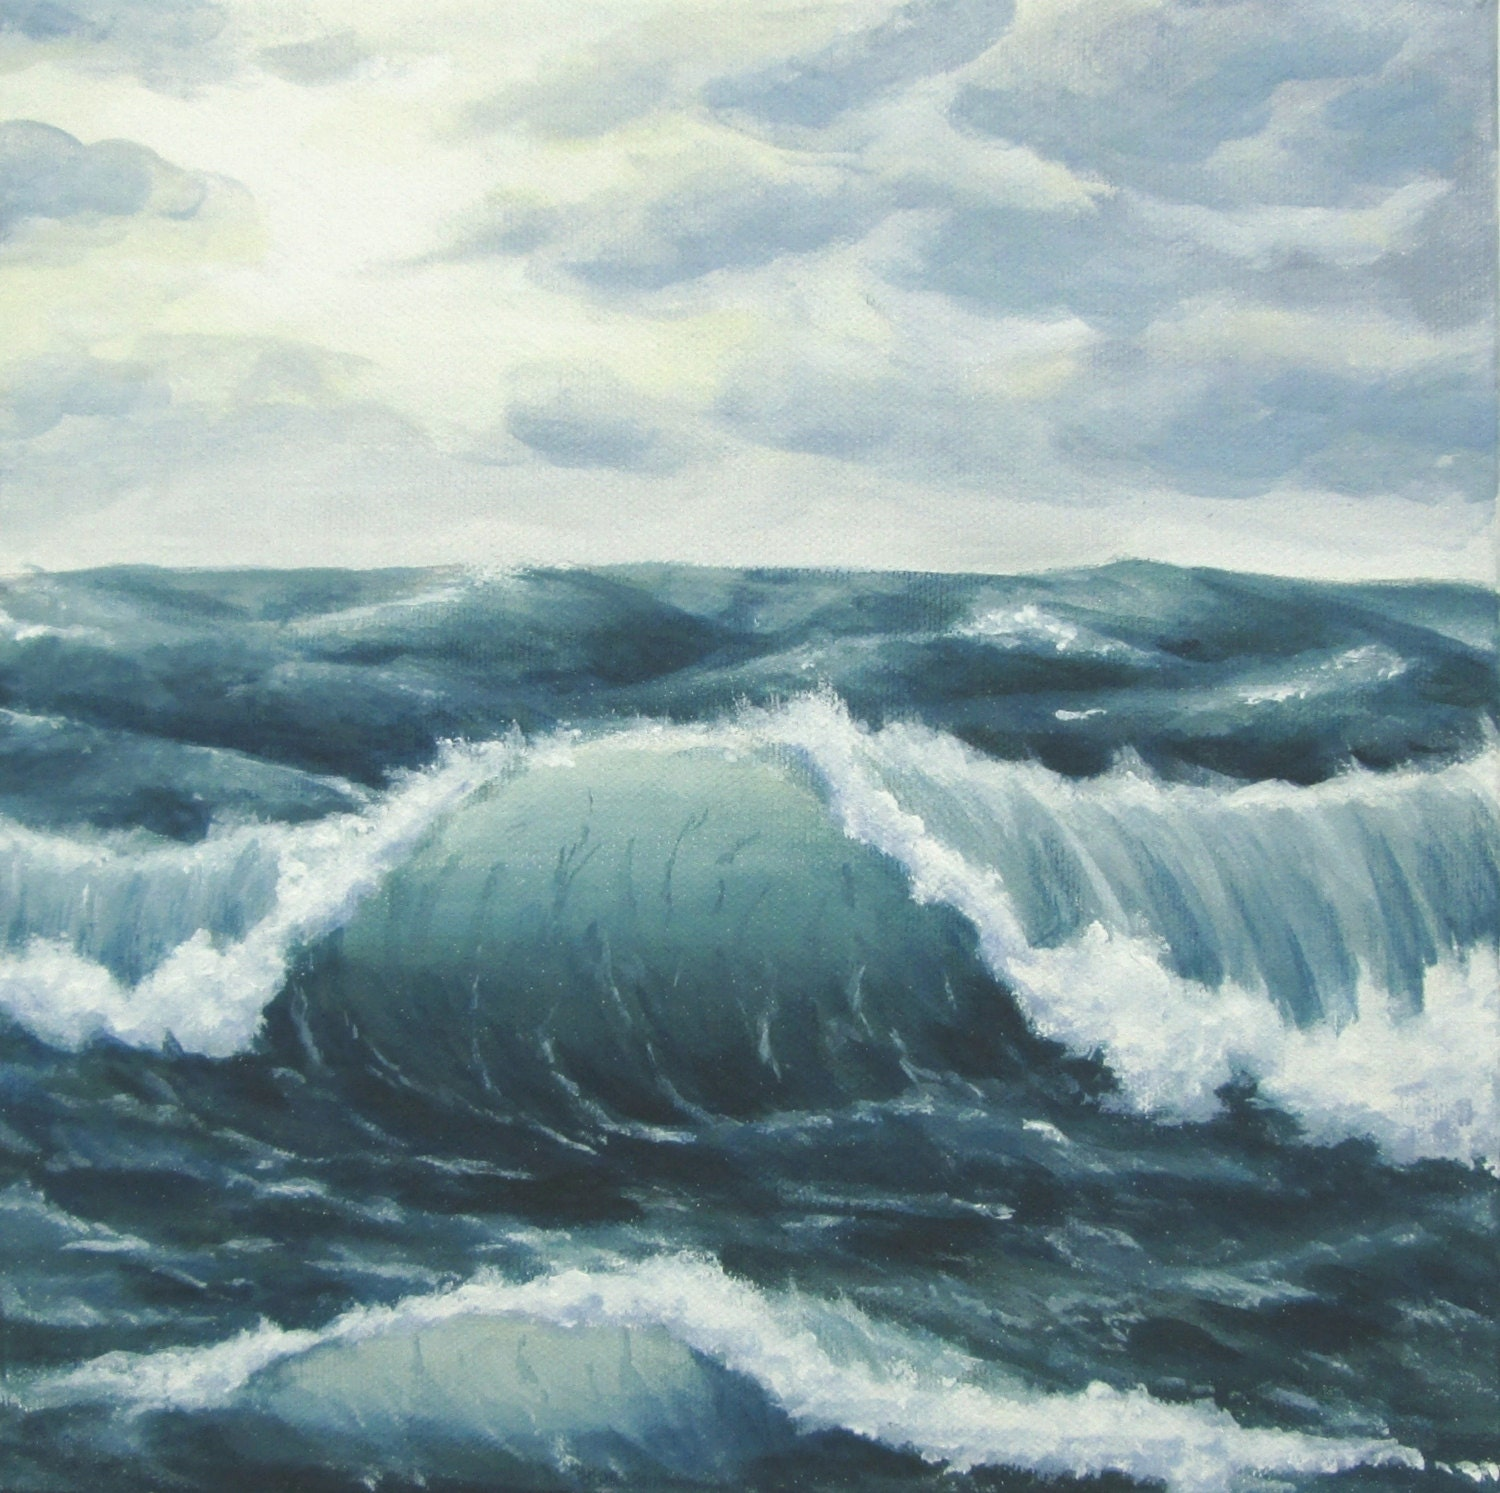 stormy sea, ocean painting, ocean waves, seascape, cloudy sky seascape, ocean acrylic painting, ocean storm, rough seas painting, choppy seas